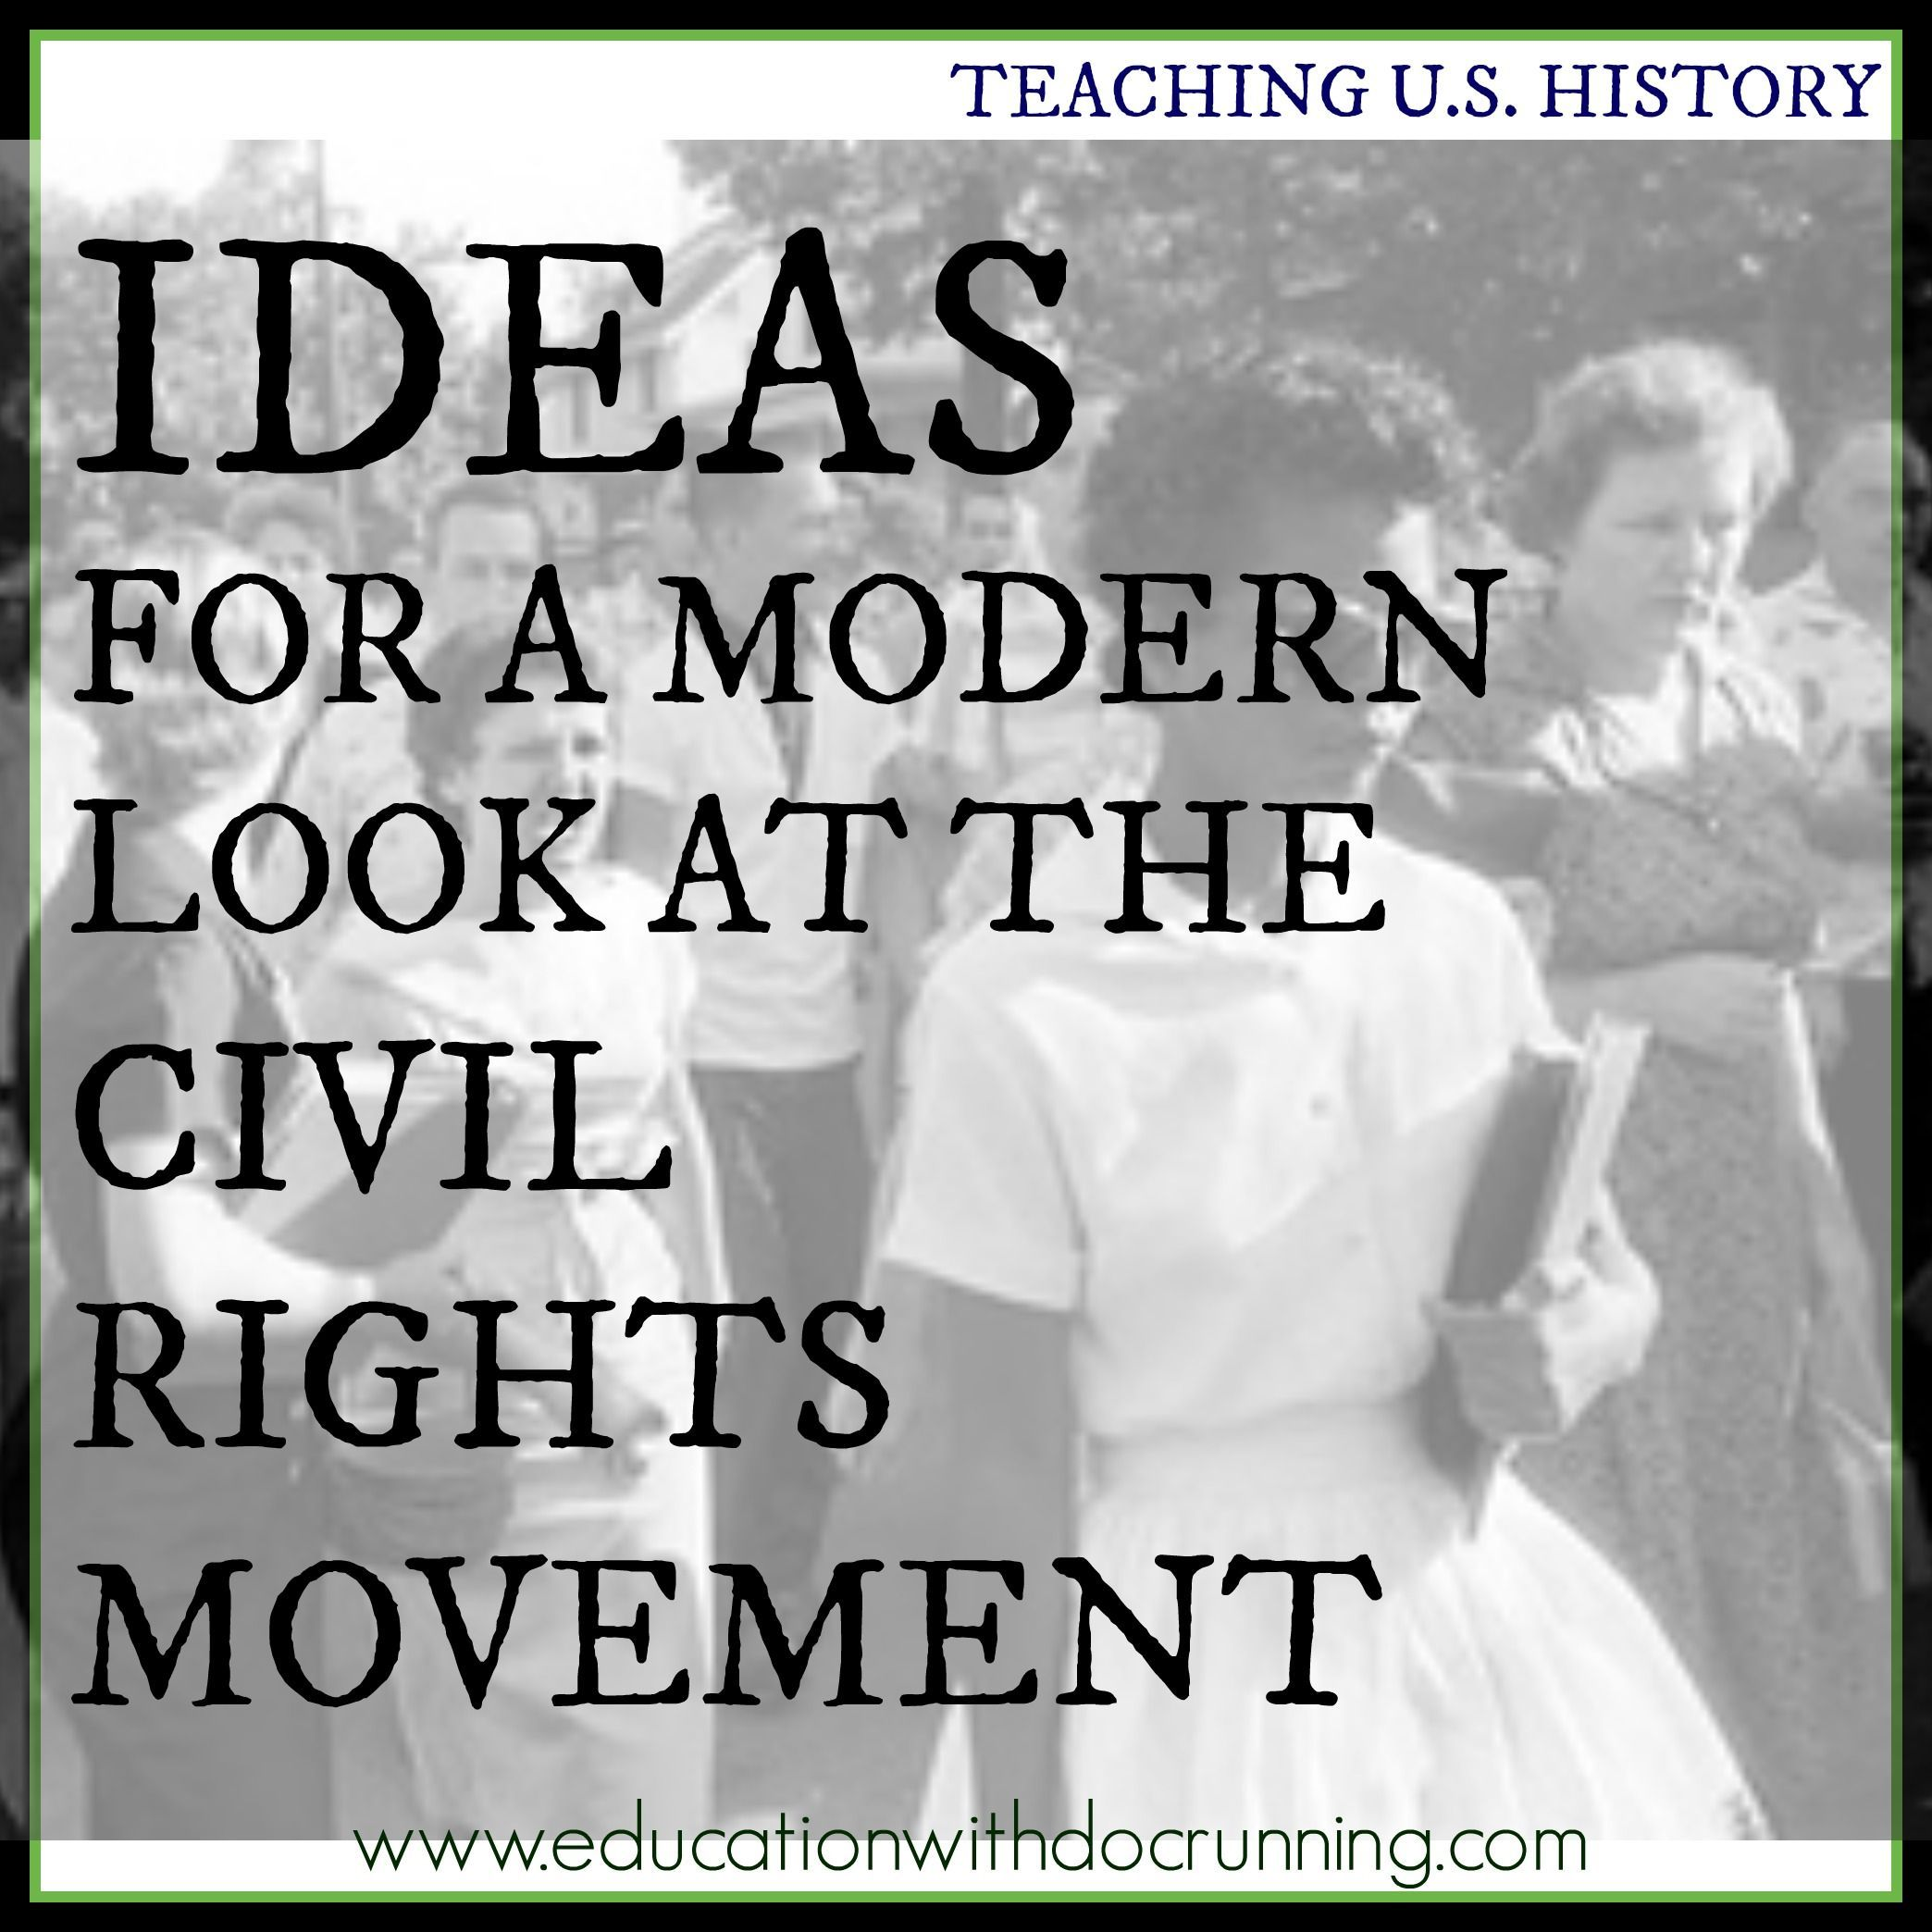 Connect The Civil Rights Movement Of The Past To The